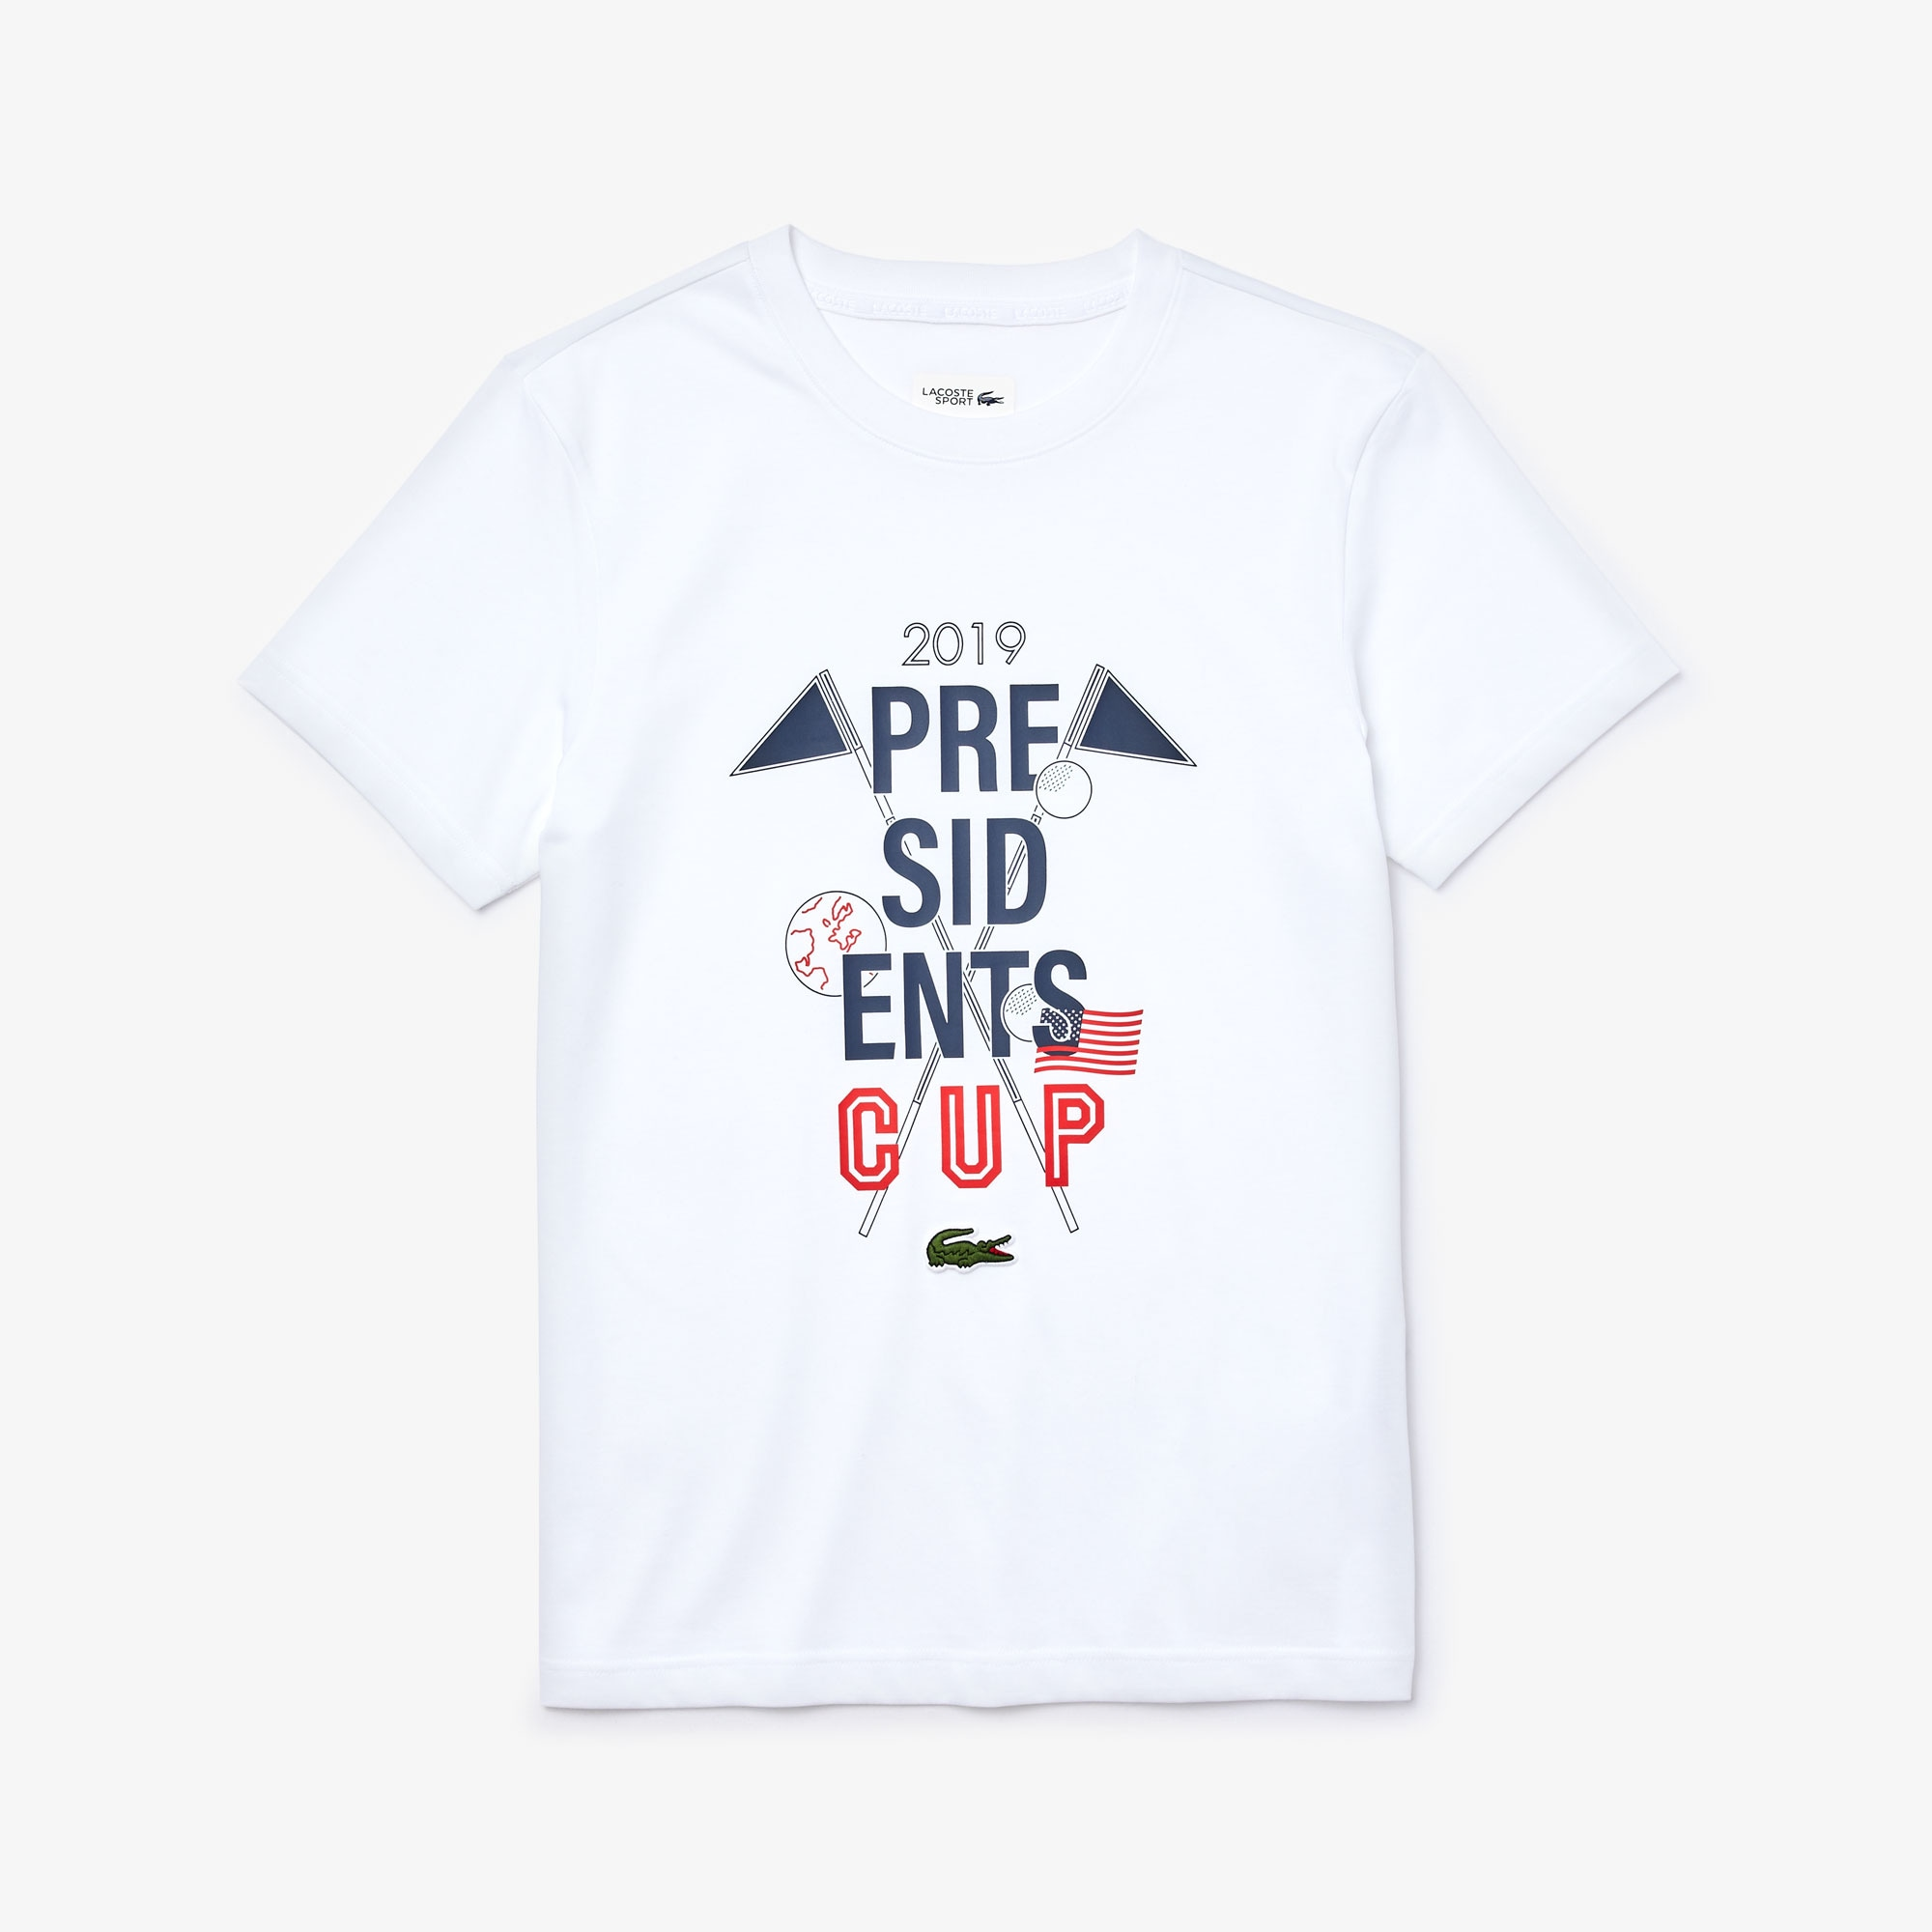 Lacoste Tops Men's Presidents Cup Breathable Printed Cotton Blend Golf T-Shirt